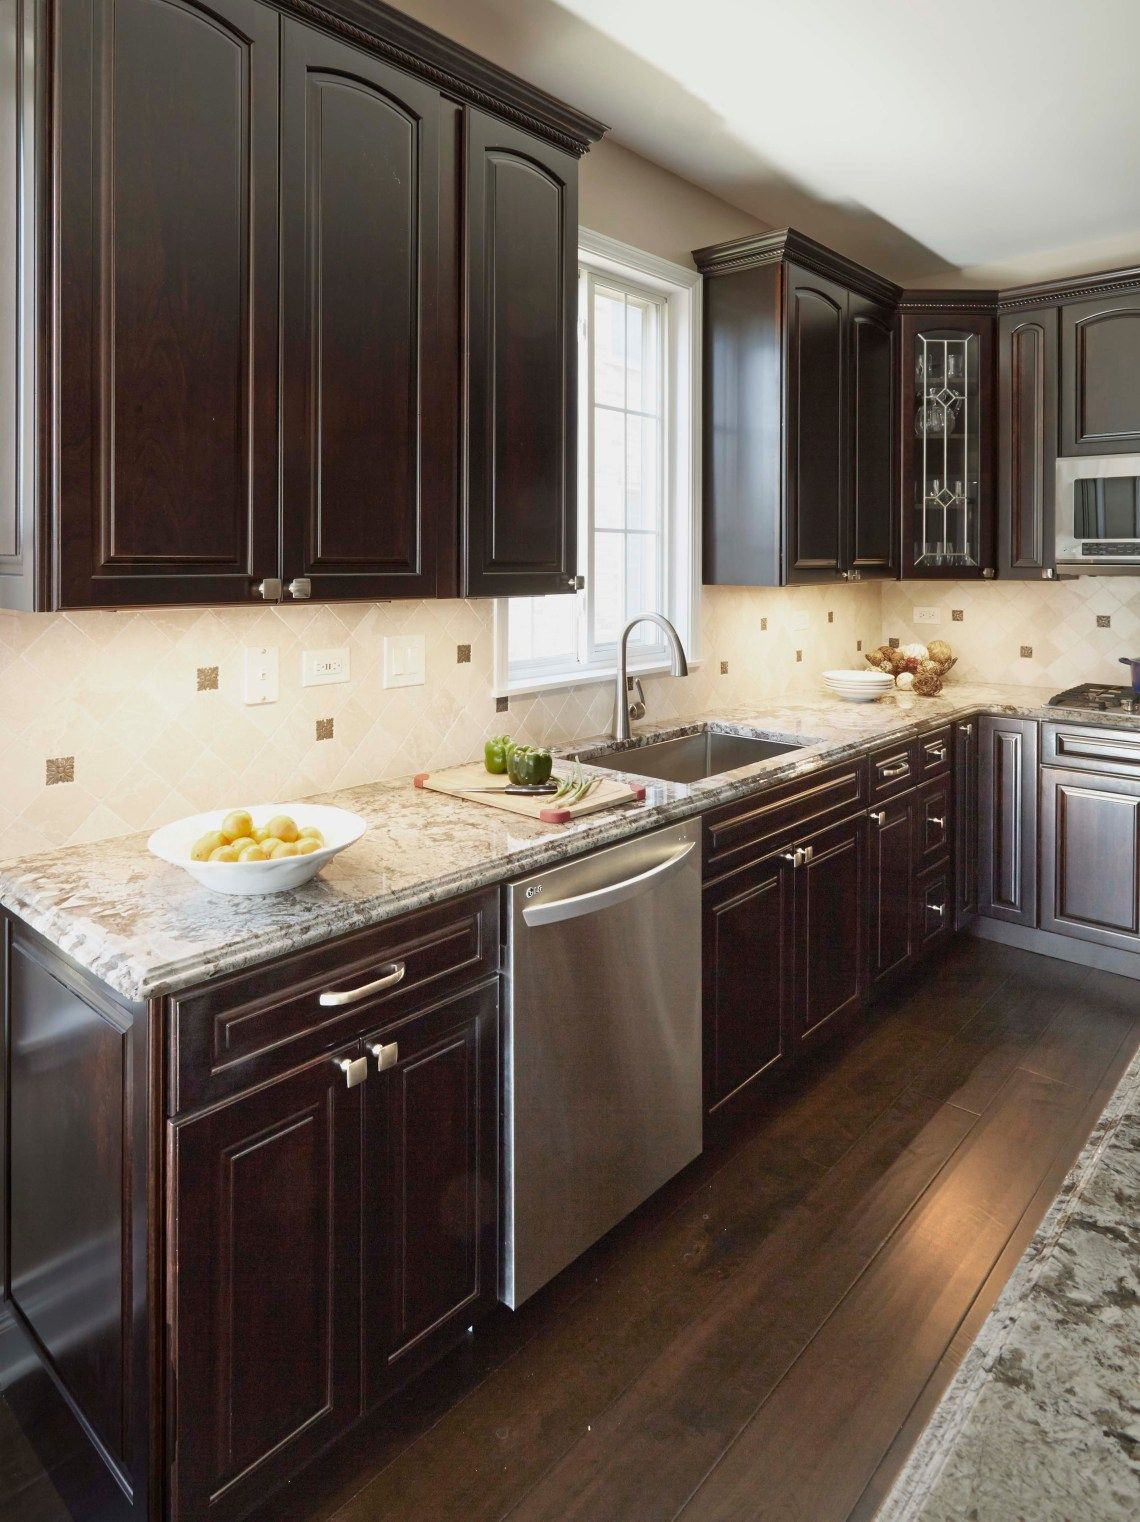 Kitchen Cabinets Home Depot Prices 2021 Kraftmaid Kitchens Kraftmaid Kitchen Cabinets Kitchen Cabinets Prices